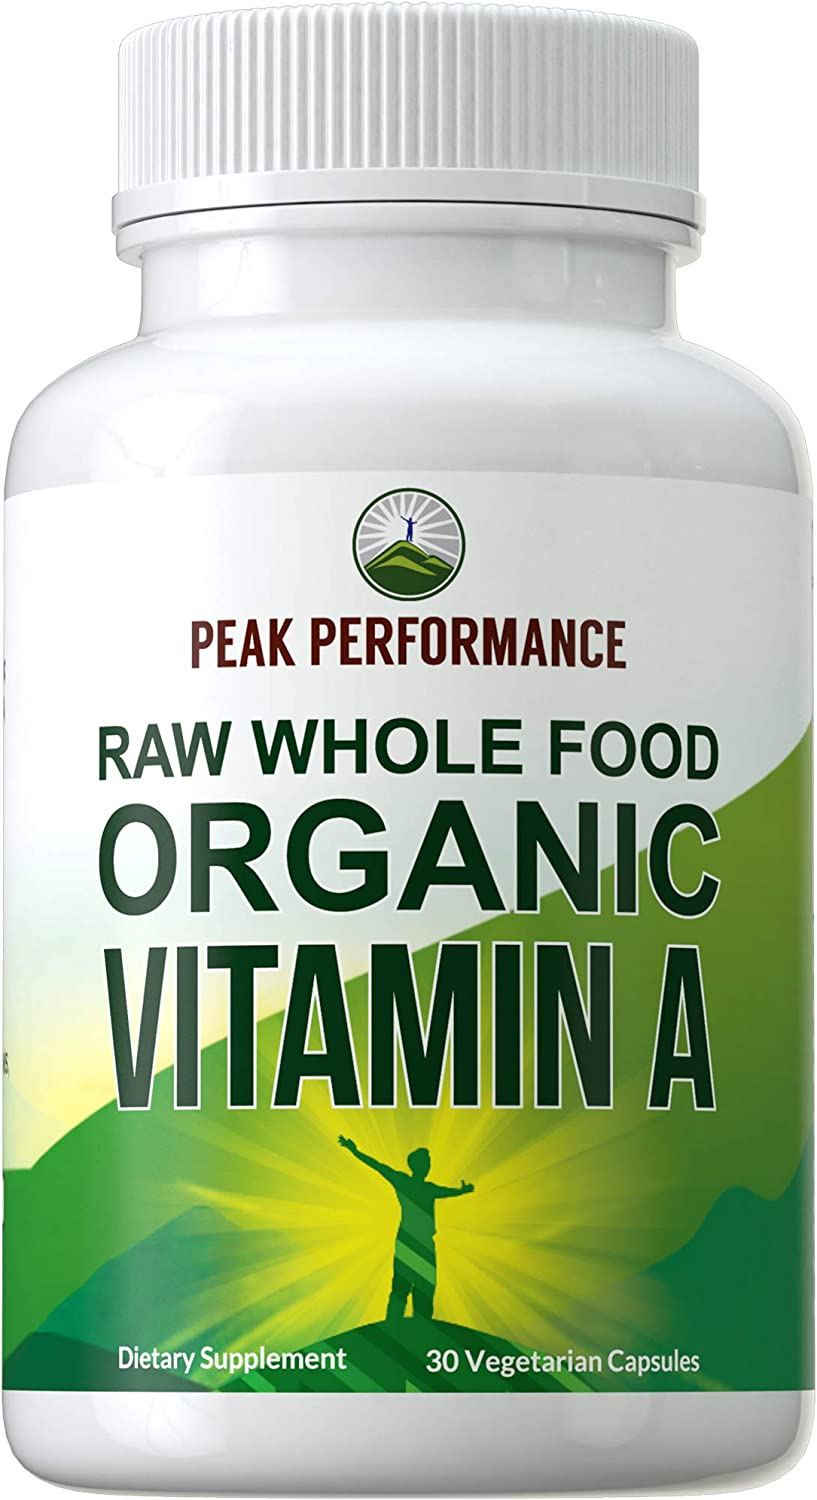 Organic Vitamin A (USA Sourced) Raw Whole Food Vegan Capsules Supplement by Peak Performance. High Potency Vitamins with Organic Carrot Juice. Great for Immune, Skin, Eye Support. Vegan Pills, Tablets